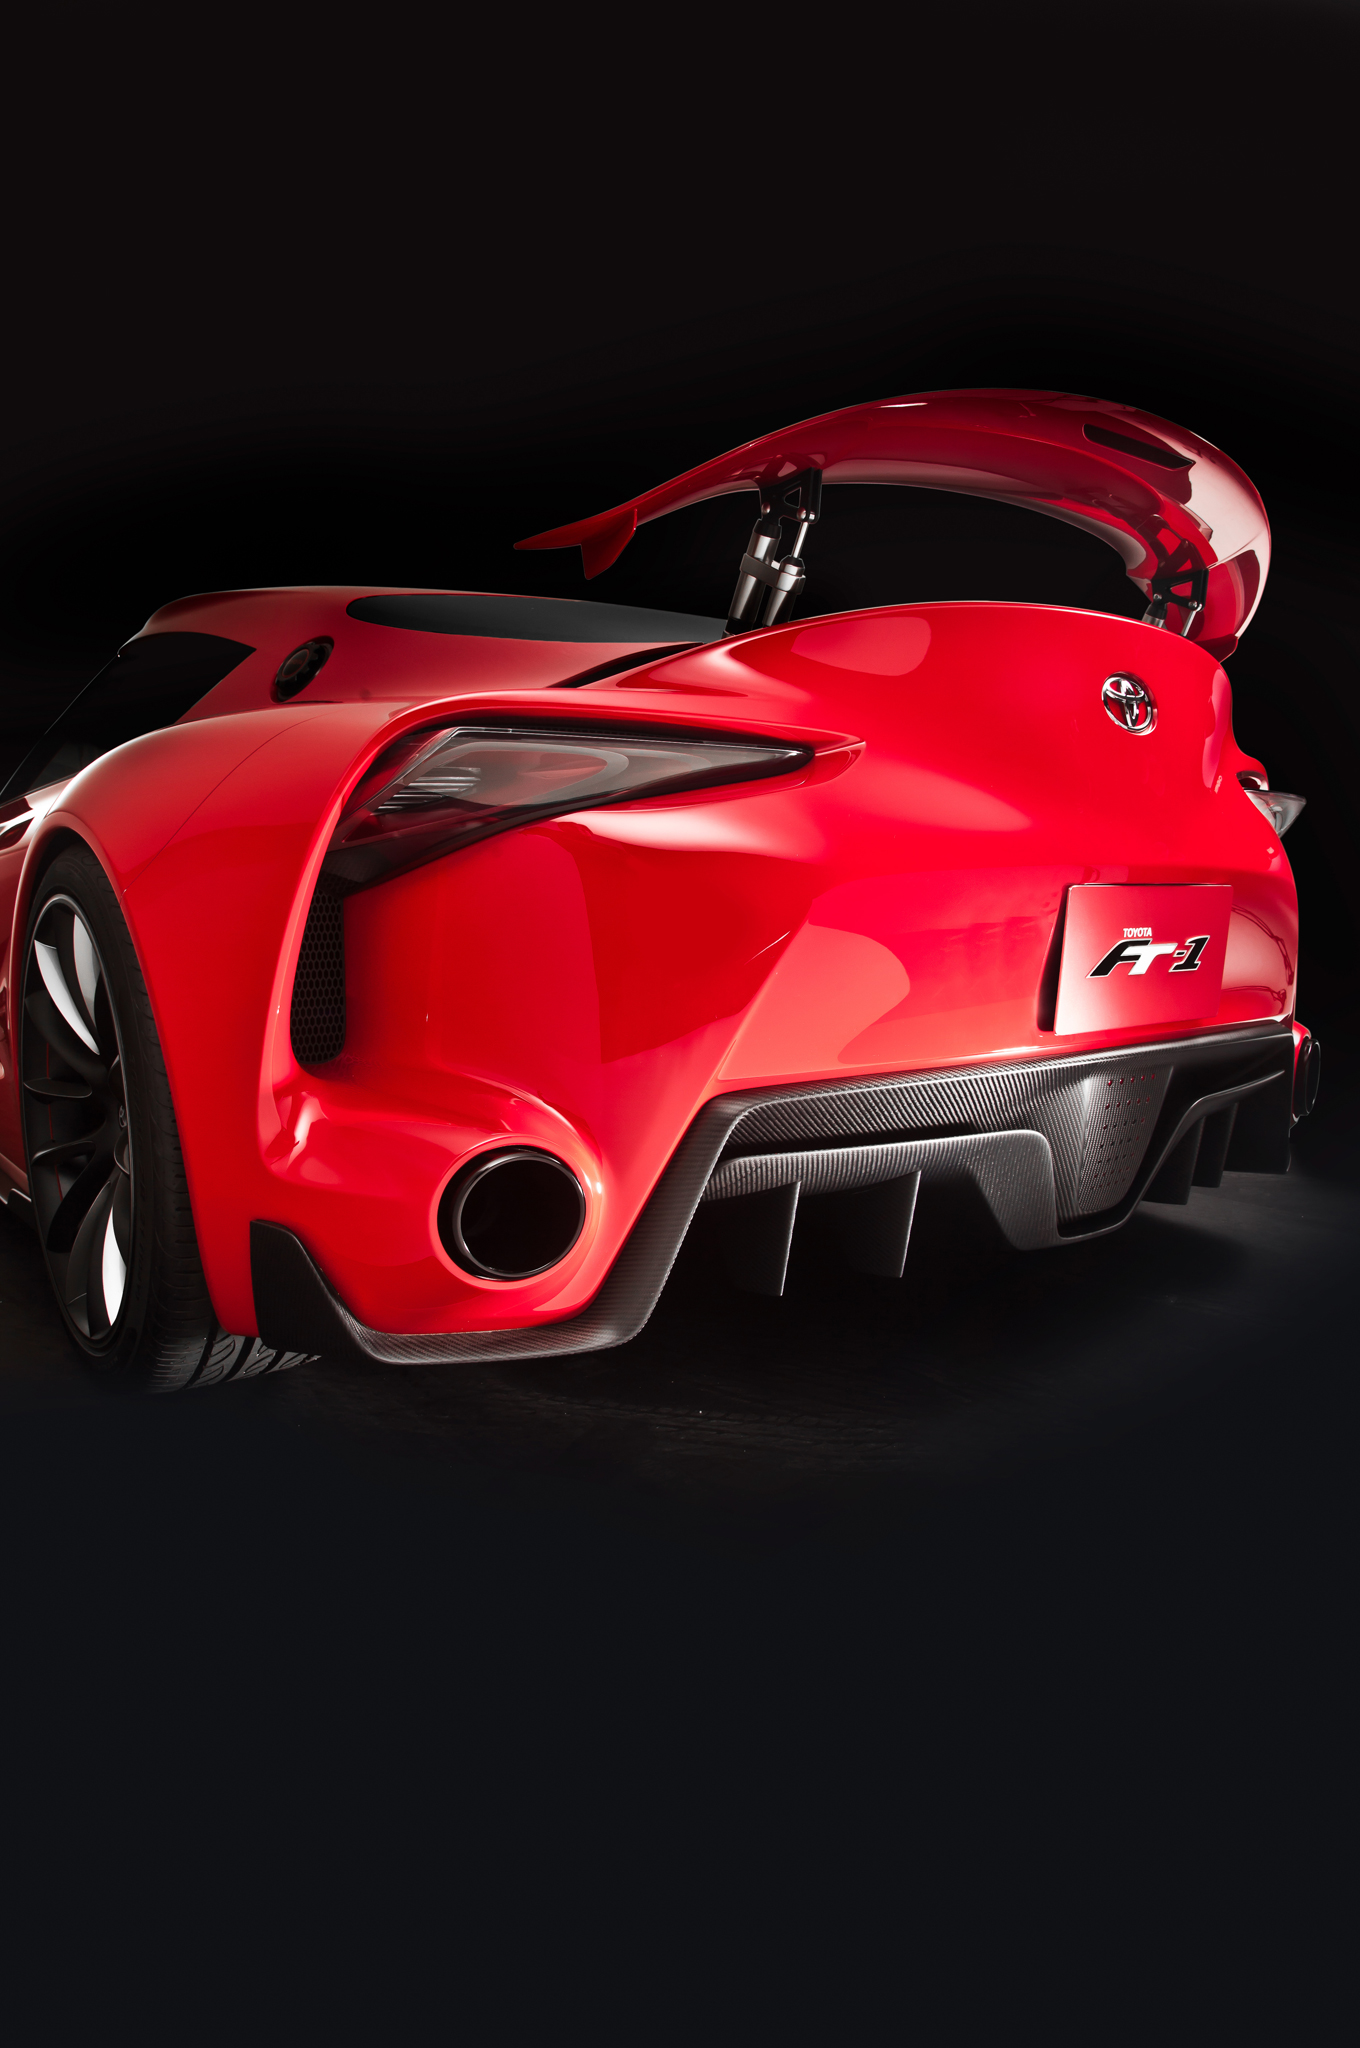 Car Enthusiast Toyota Ft-1 Cool Hi-res Wallpapers | Supramkv - 2020